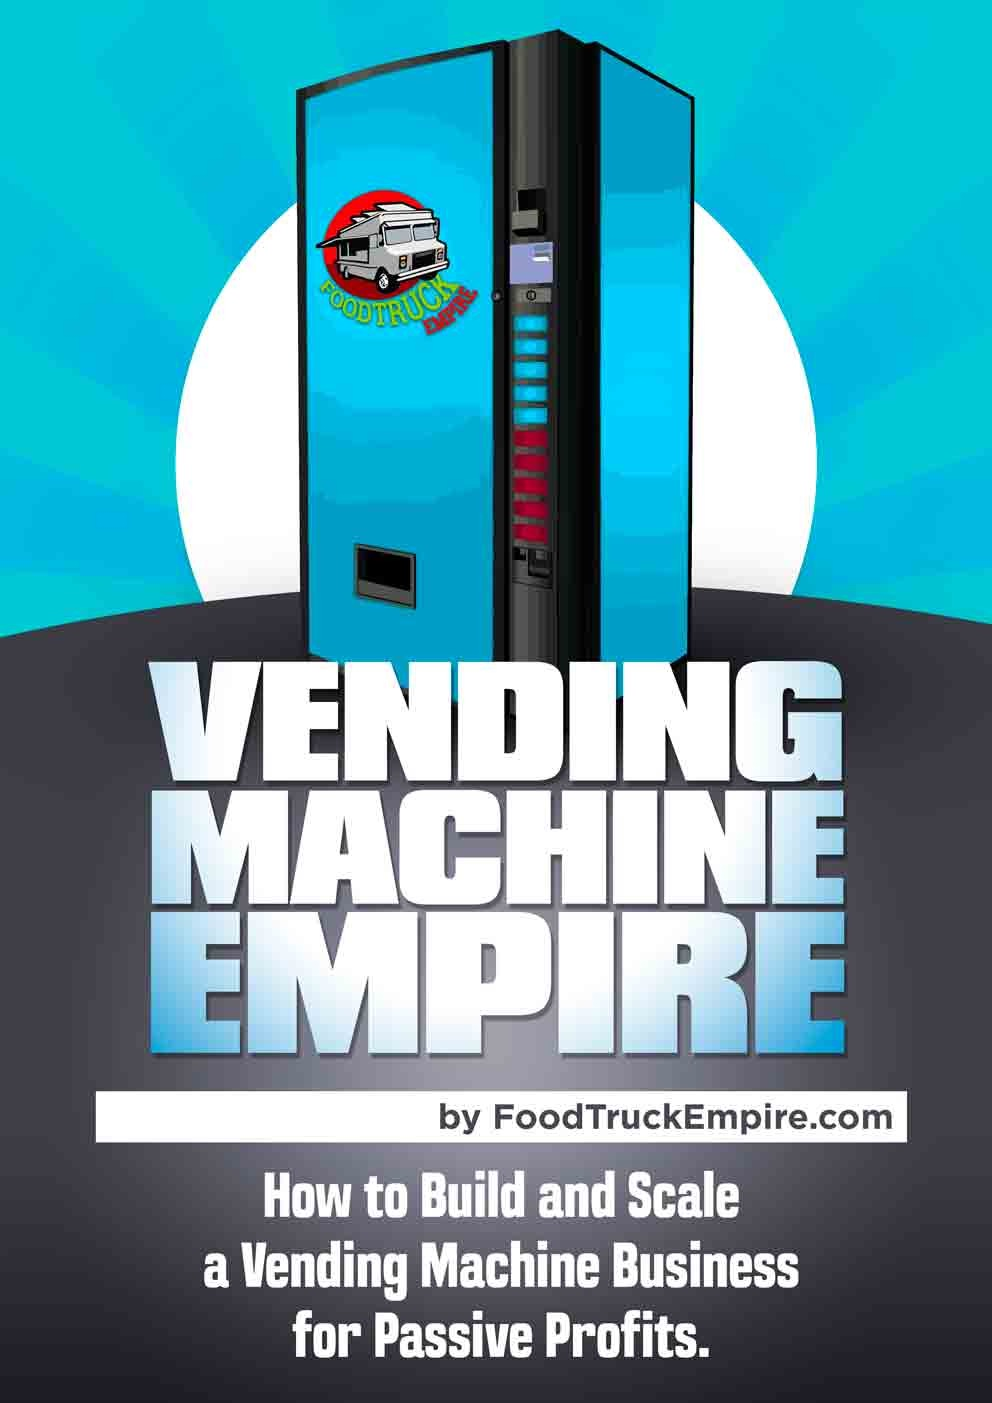 Vending Machine Empire - How to Build and Scale a Vending Machine Business for Passive Profits.